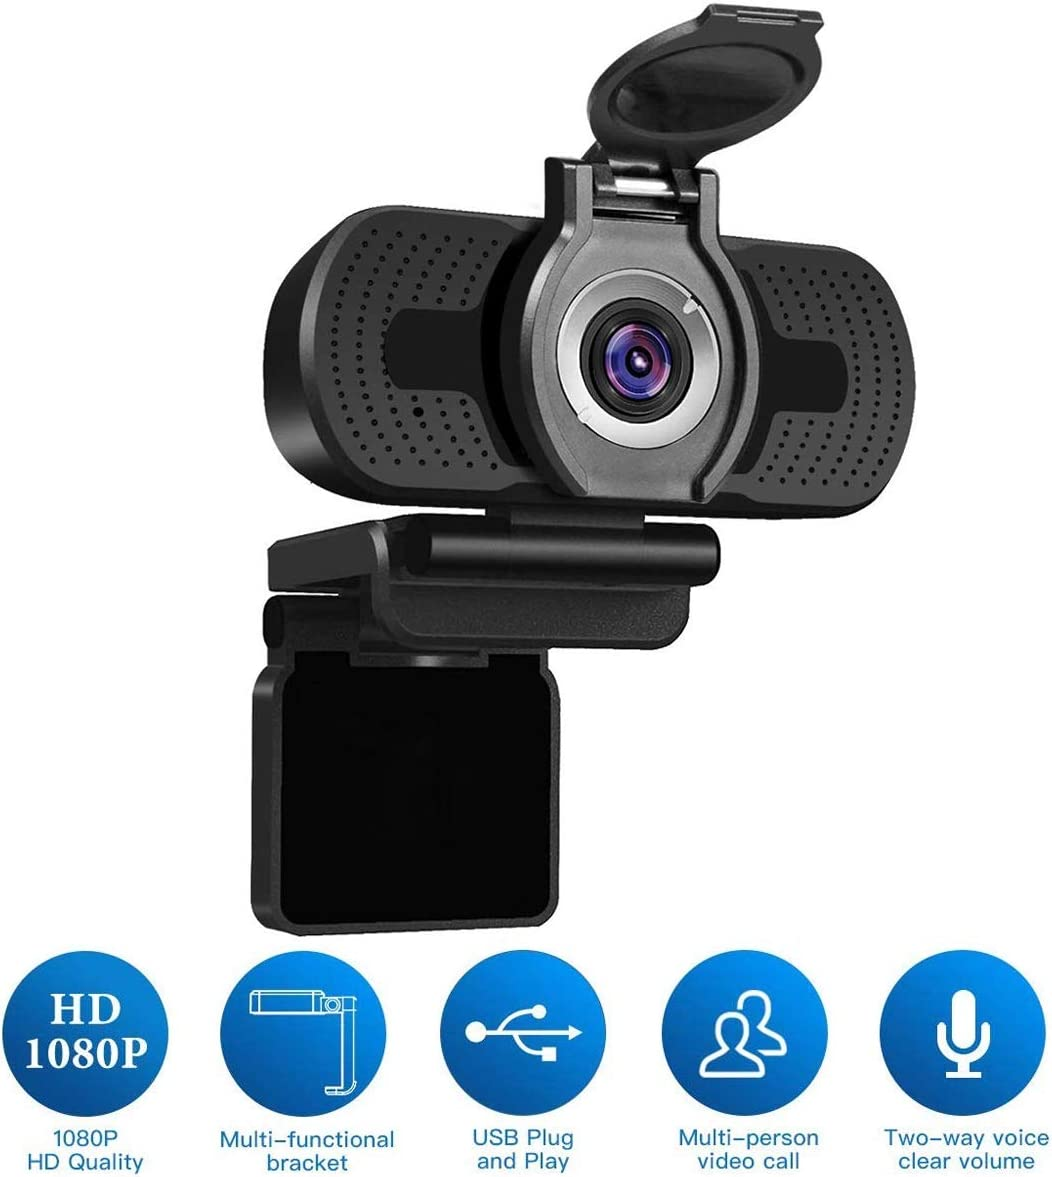 1080P Full HD Webcam with Webcam Cover,Larmtek USB Camera,Computer Laptop Camera for Conference and Video Call, Pro Stream Webcam for Working at Home,HS W2